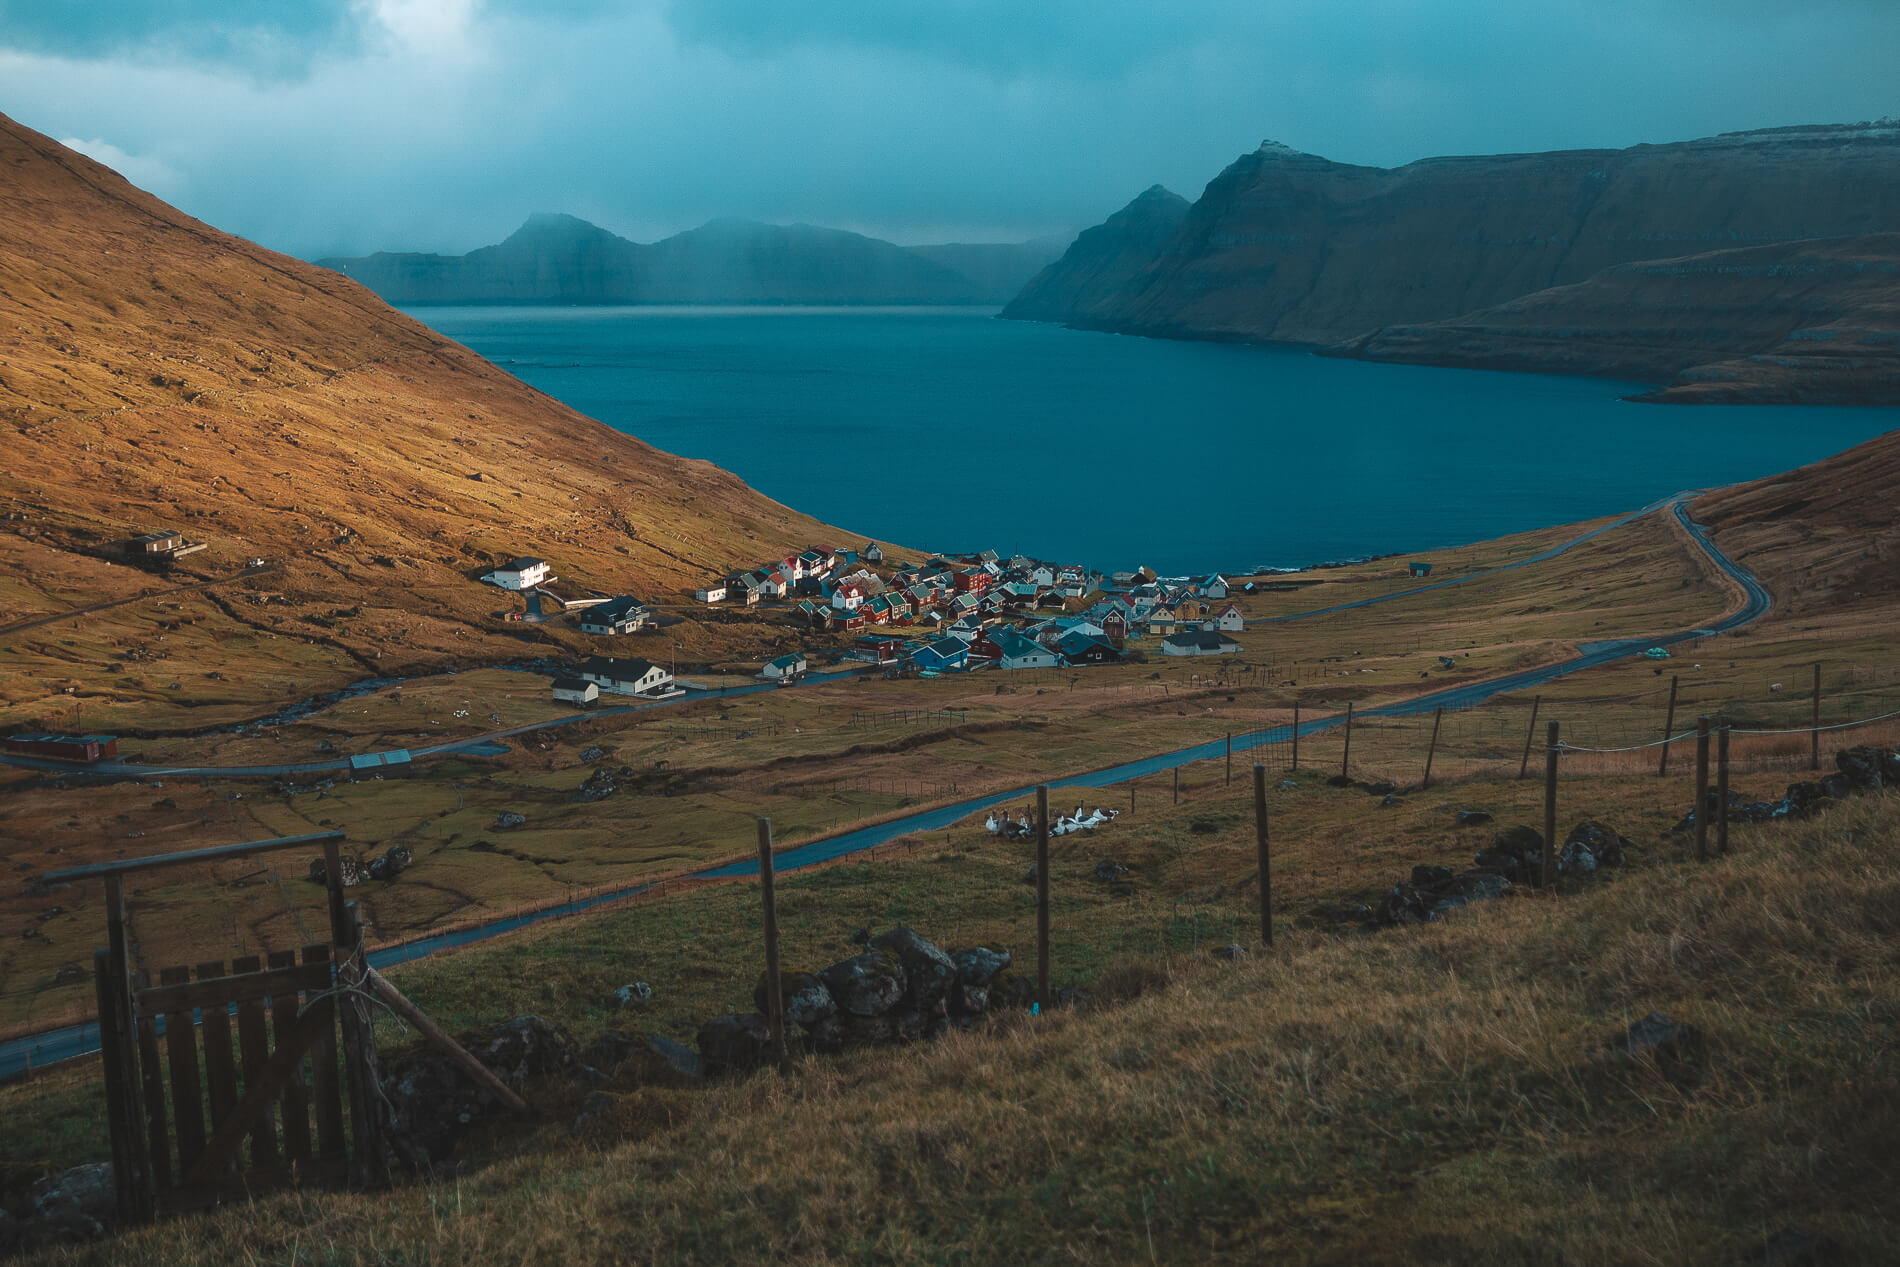 Funningur village Faroe Islands, faroe islands facts, visit faroe islands